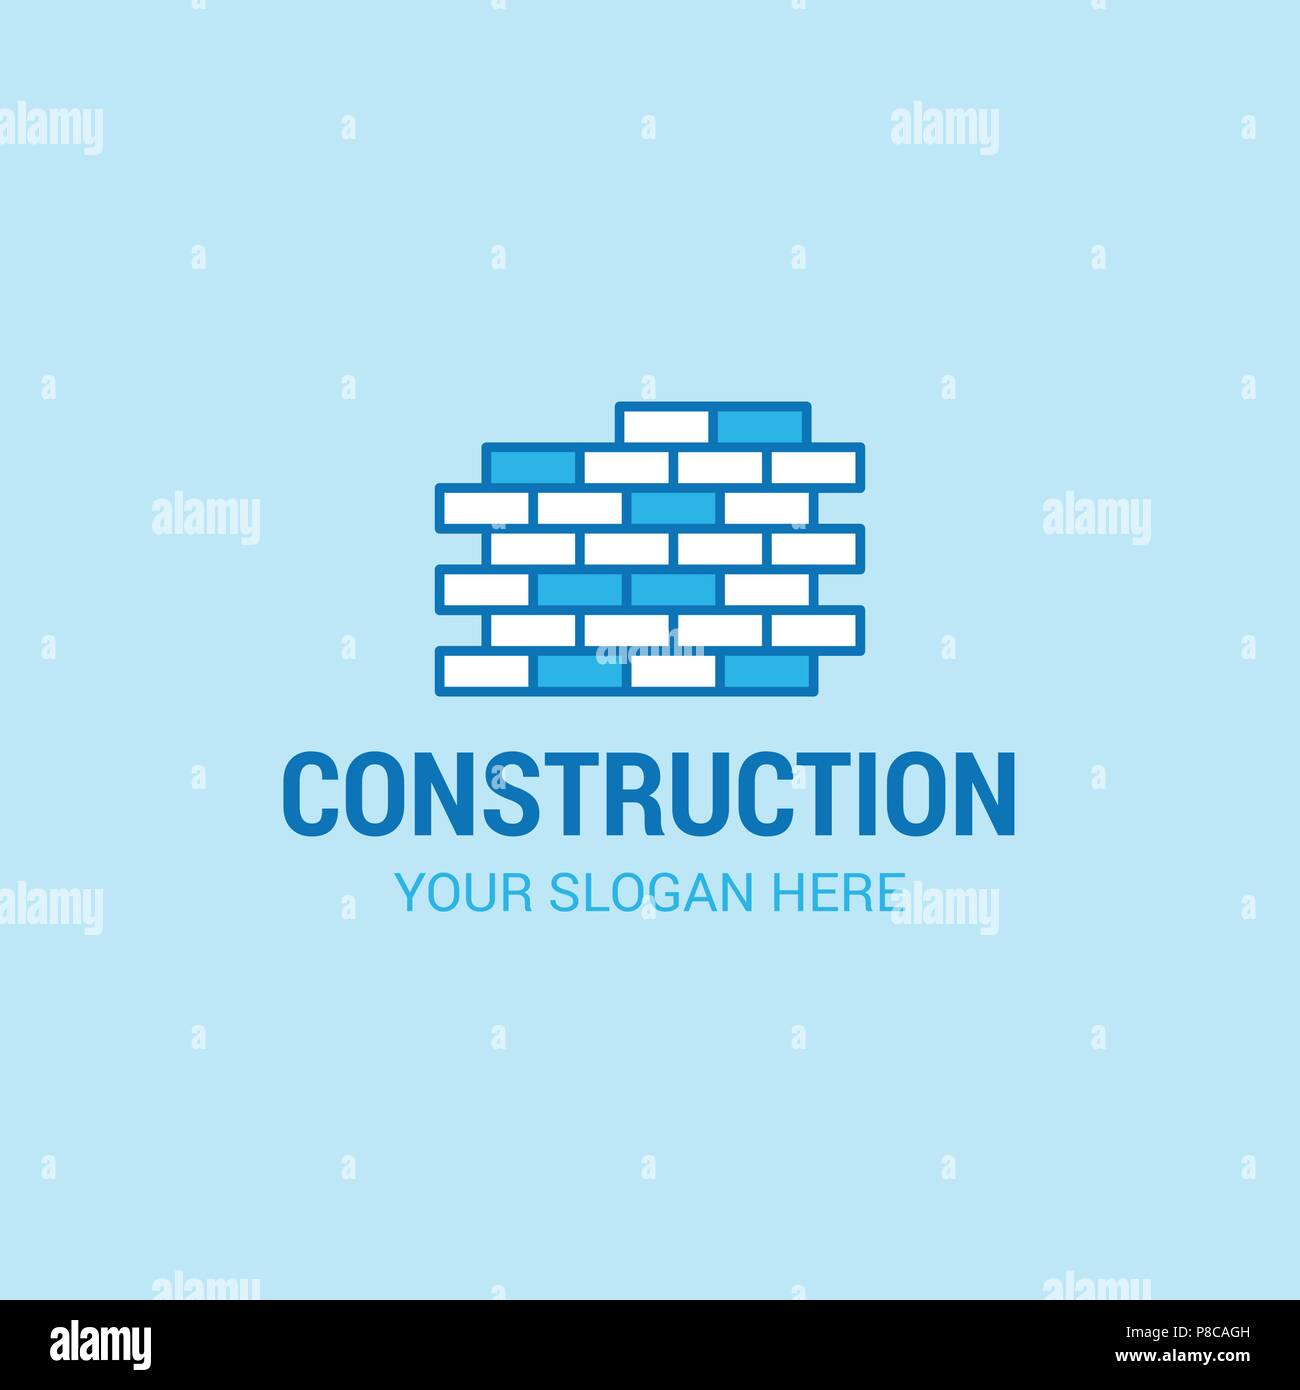 6c766028cae Labour day logo with light blue background vector - For web design and  application interface, also useful for infographics. Vector illustration.